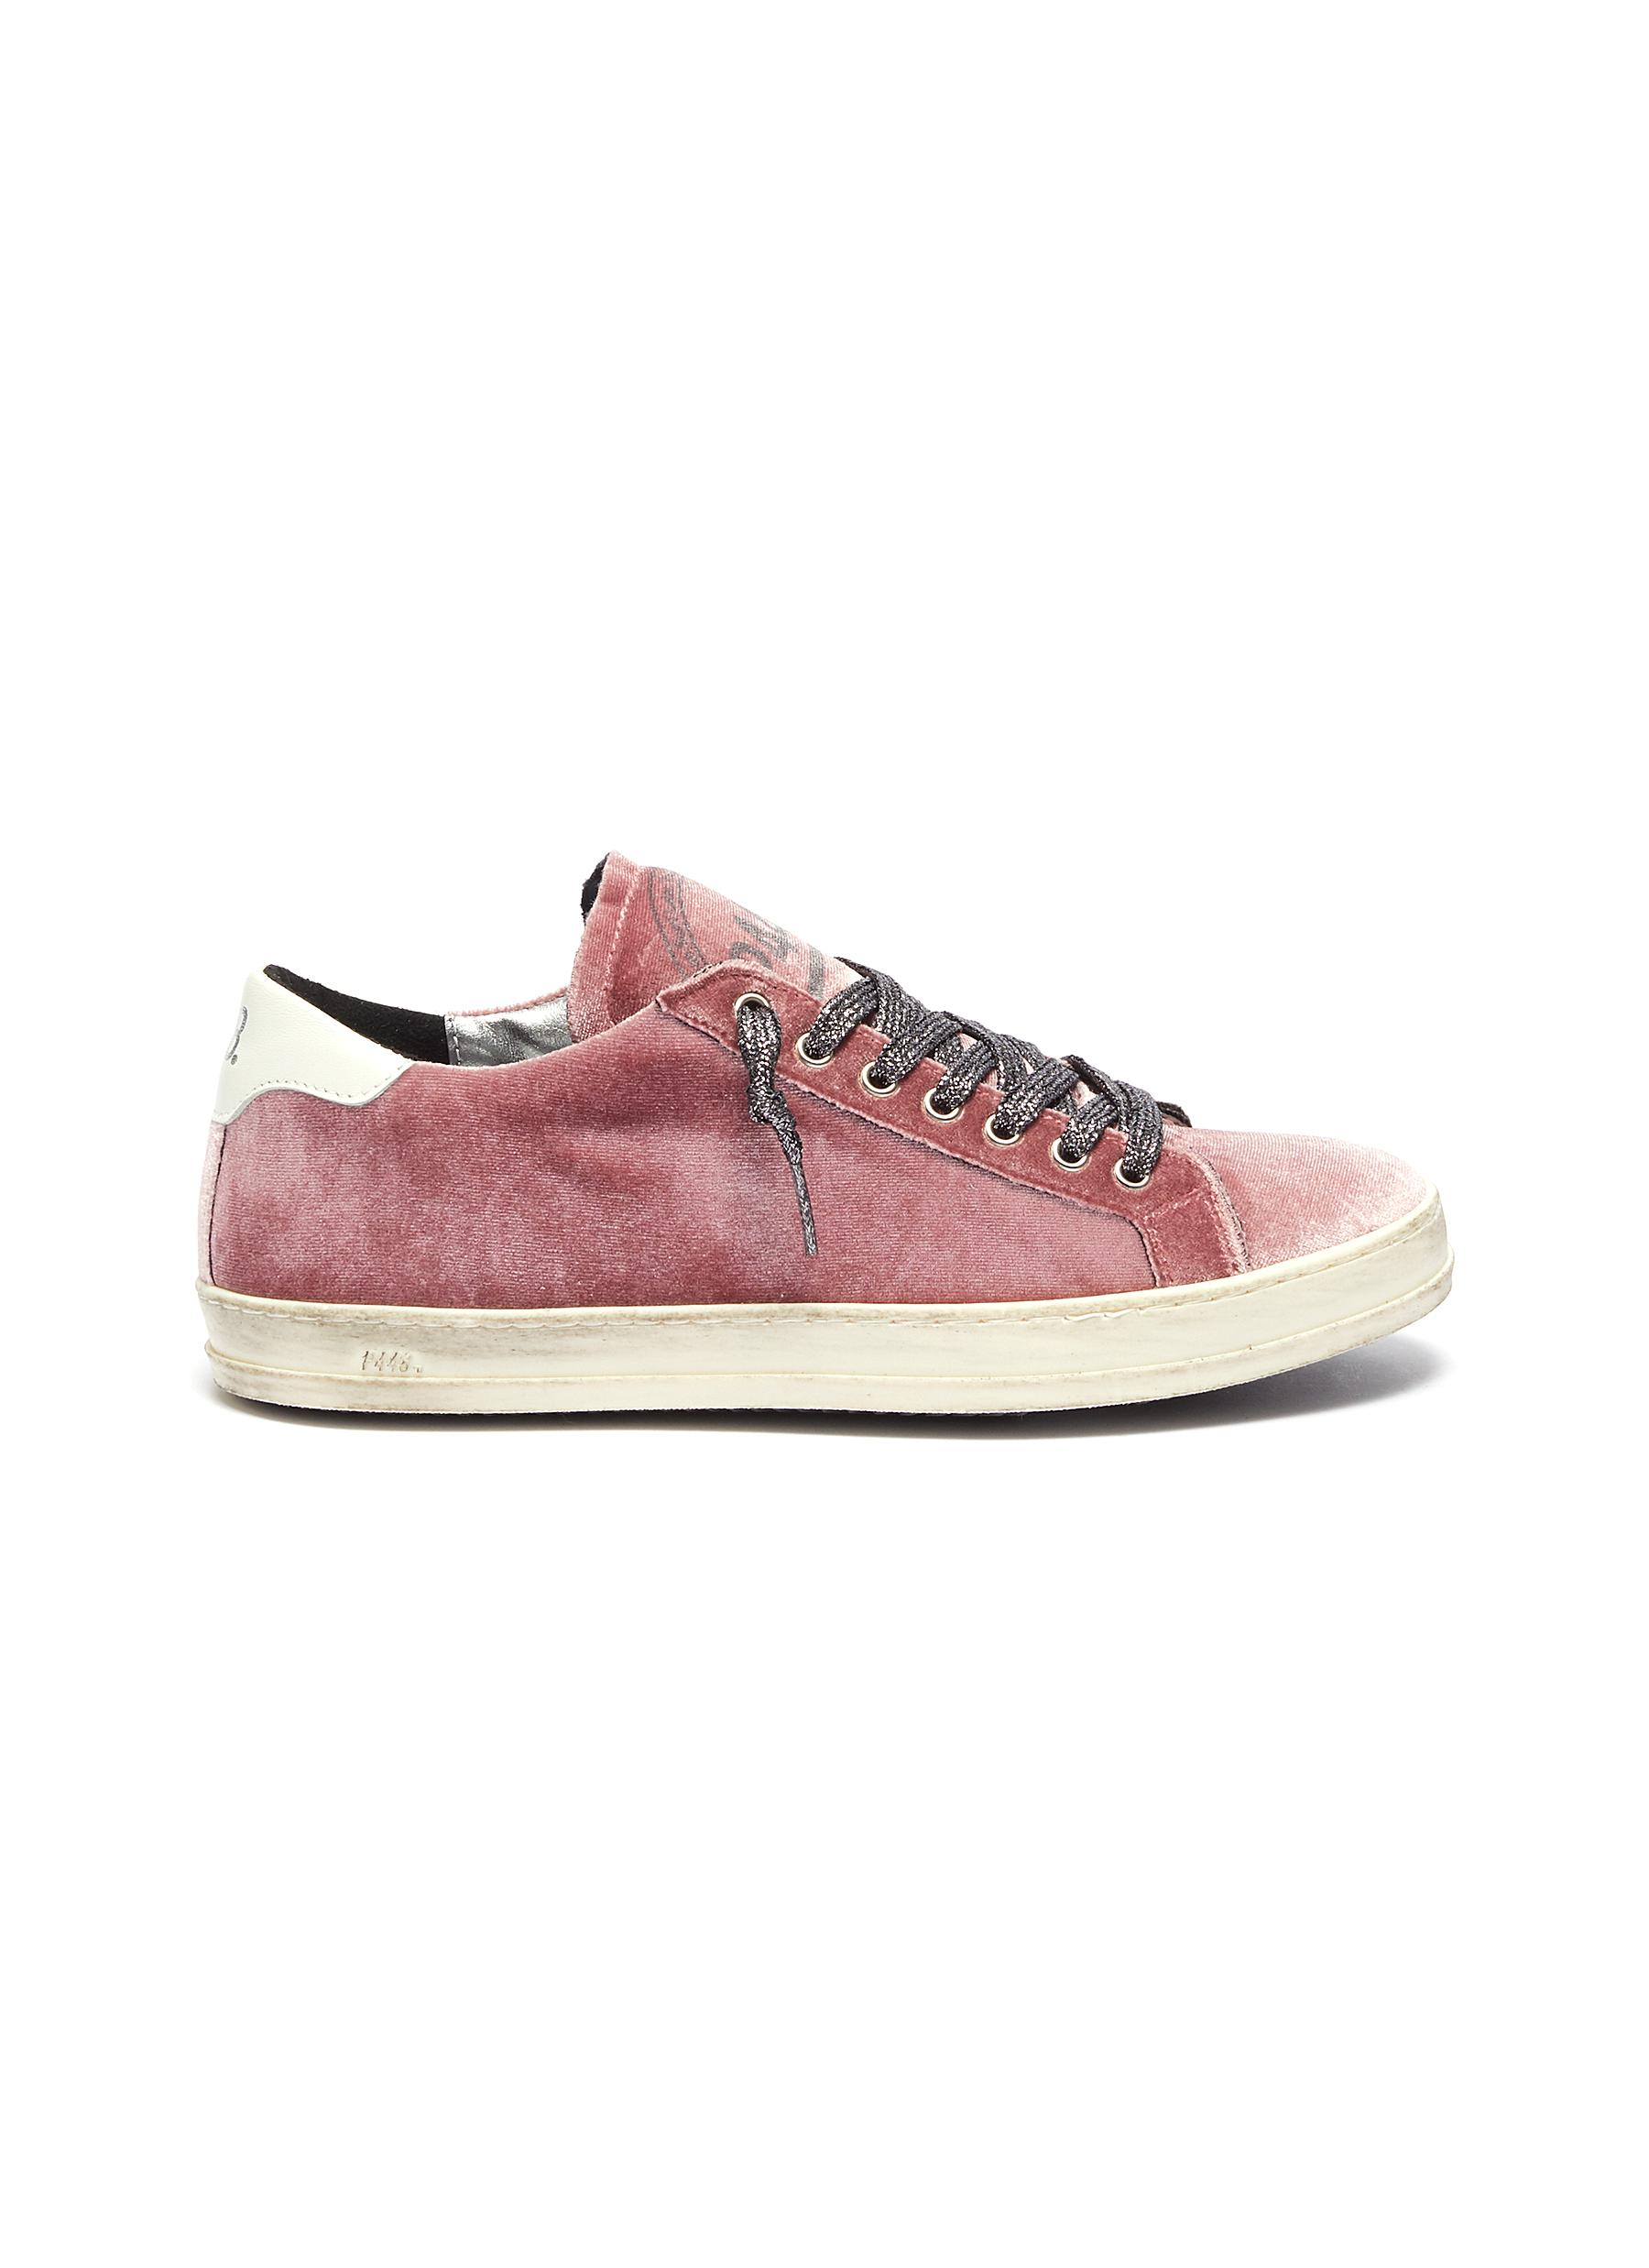 John colourblock panelled velvet sneakers by P448